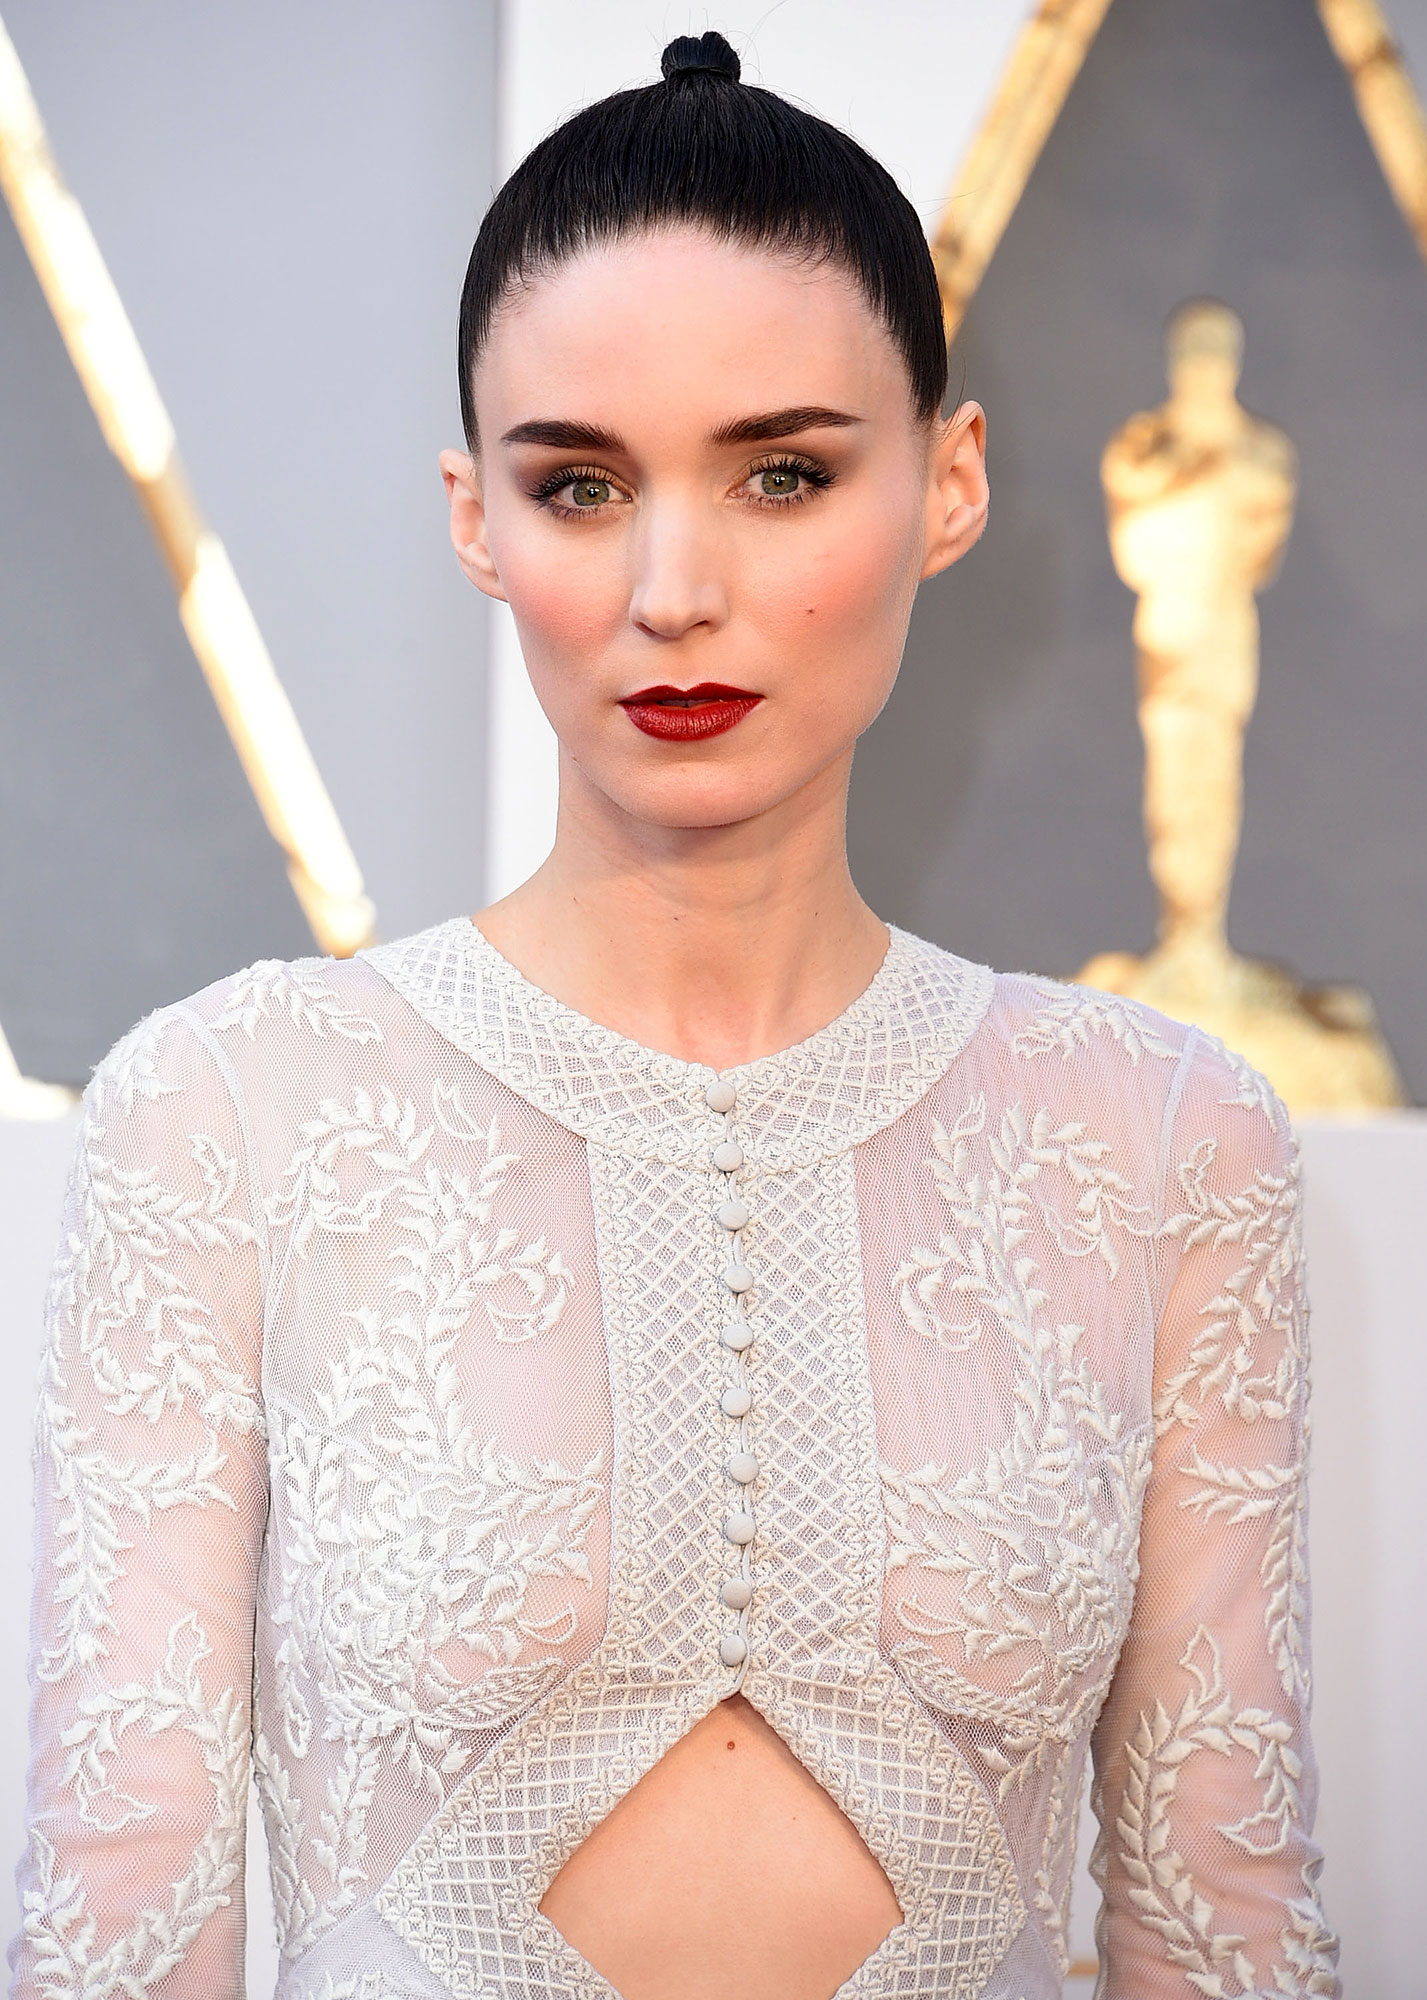 Rooney Mara - Stars Who Have Never Won Oscars - The girl with two Oscar nominations — one for 2015's Carol and another for 2011's The Girl With the Dragon Tattoo — is also the girl with no statues to speak of. Mara is still waiting on her first win.